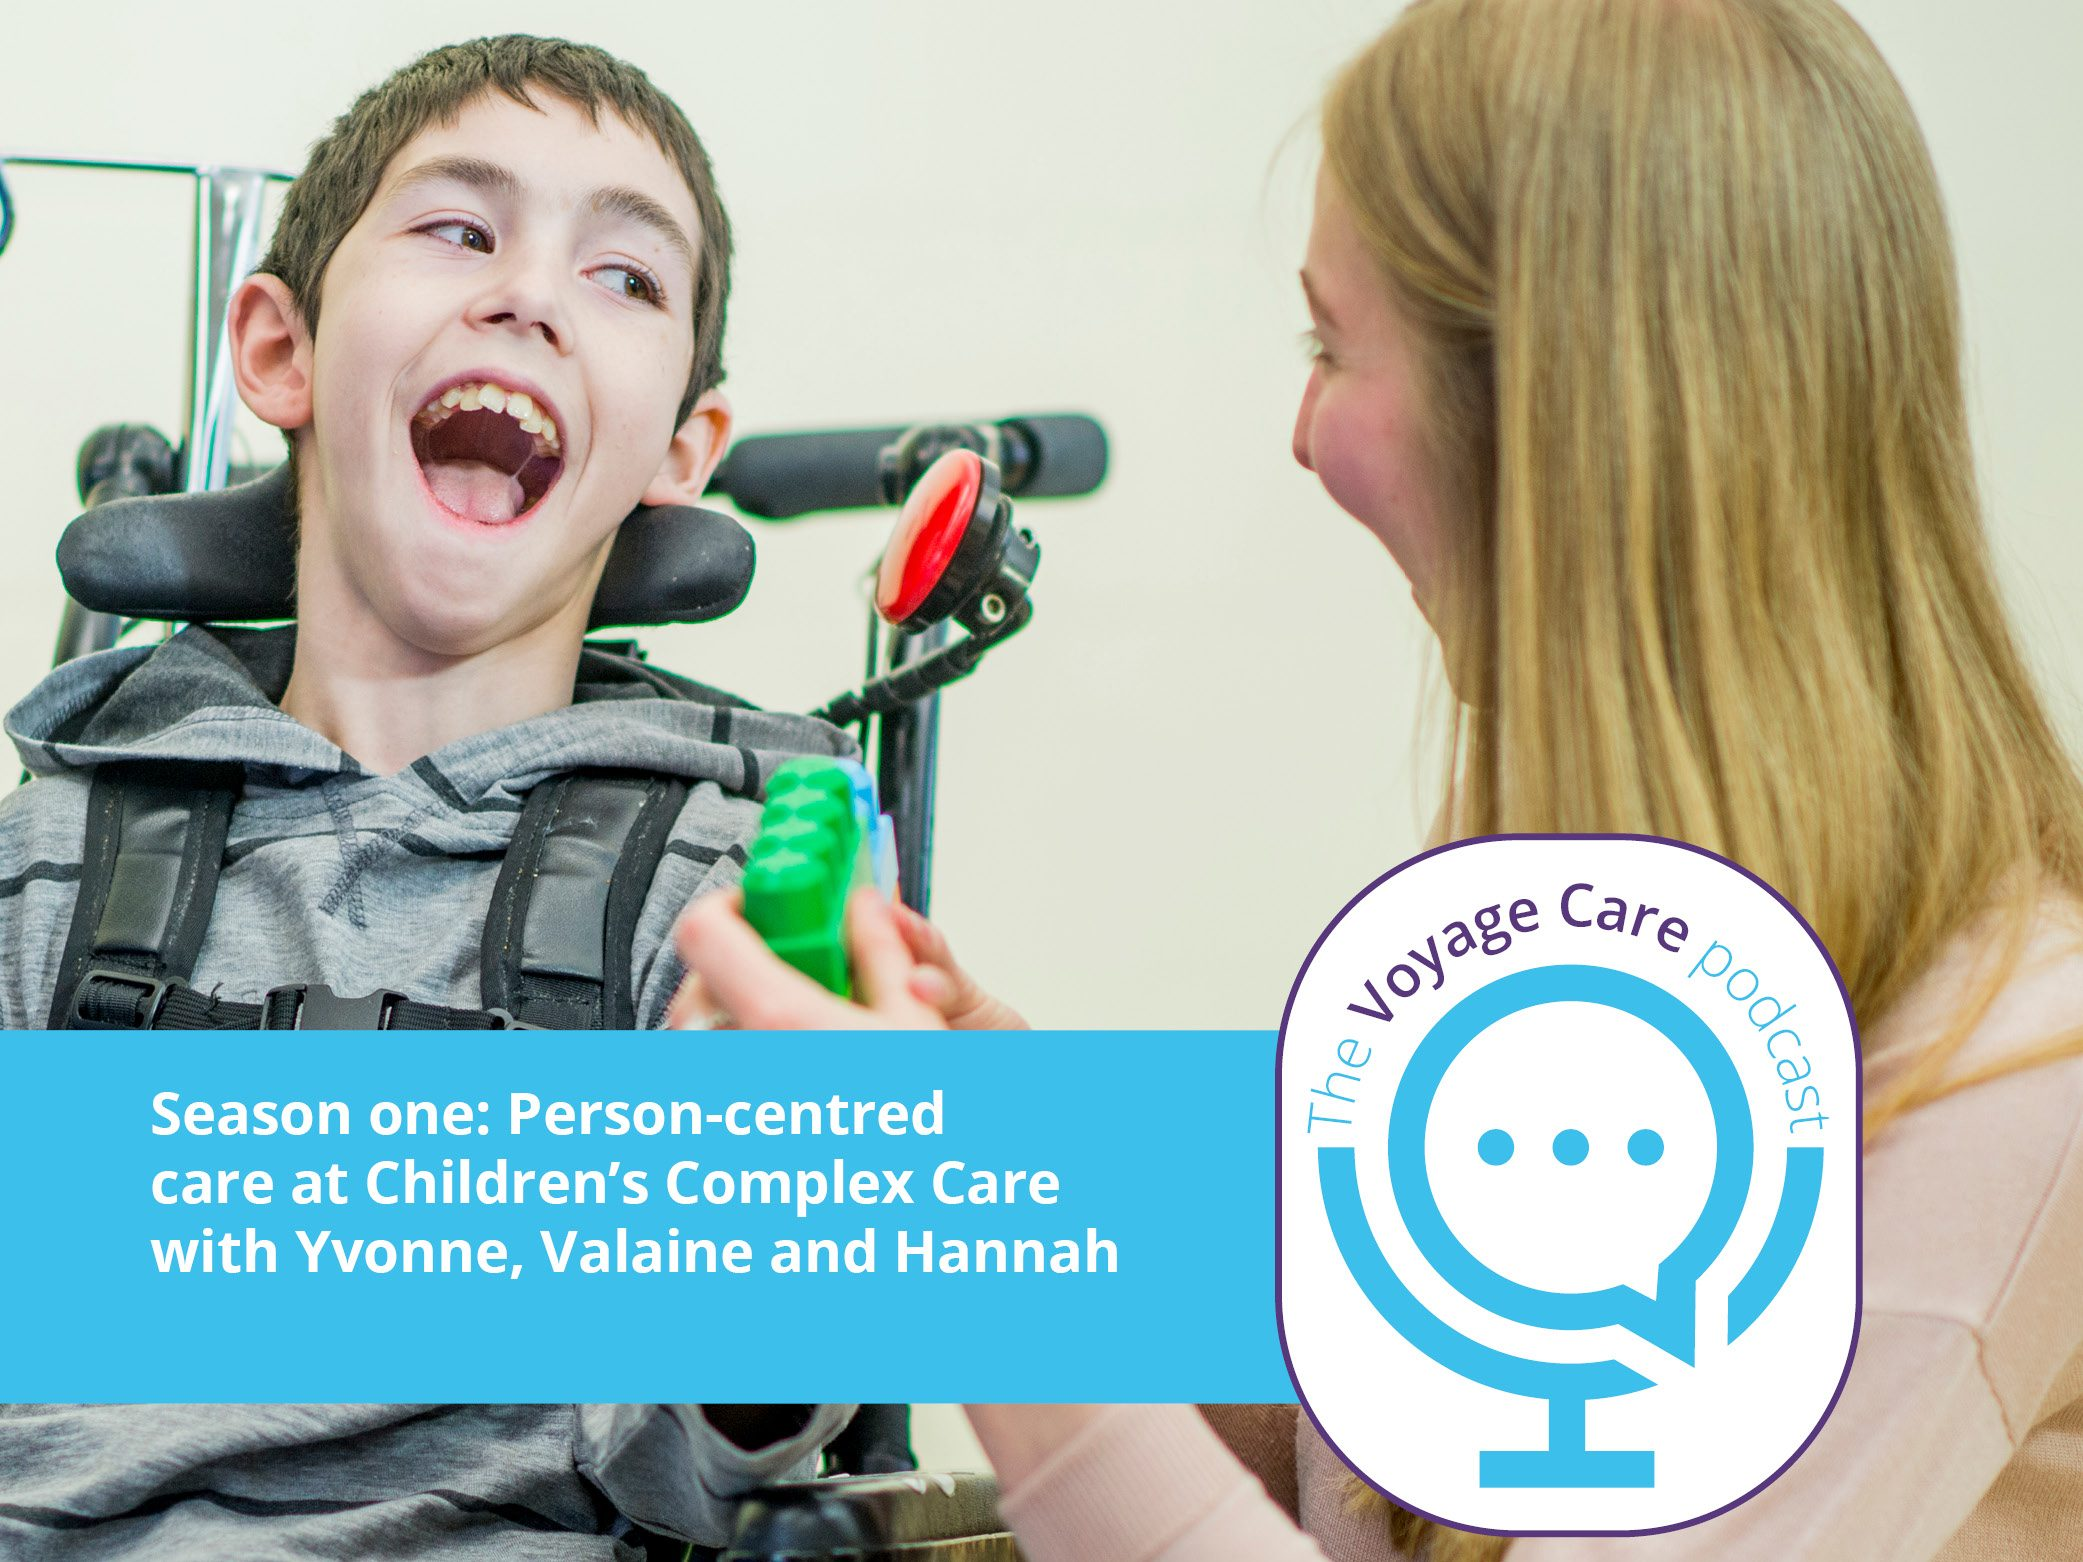 Voyage Care Podcast S1E4: Yvonne, Valaine and Hannah – Person-centred care in Children's Complex Care